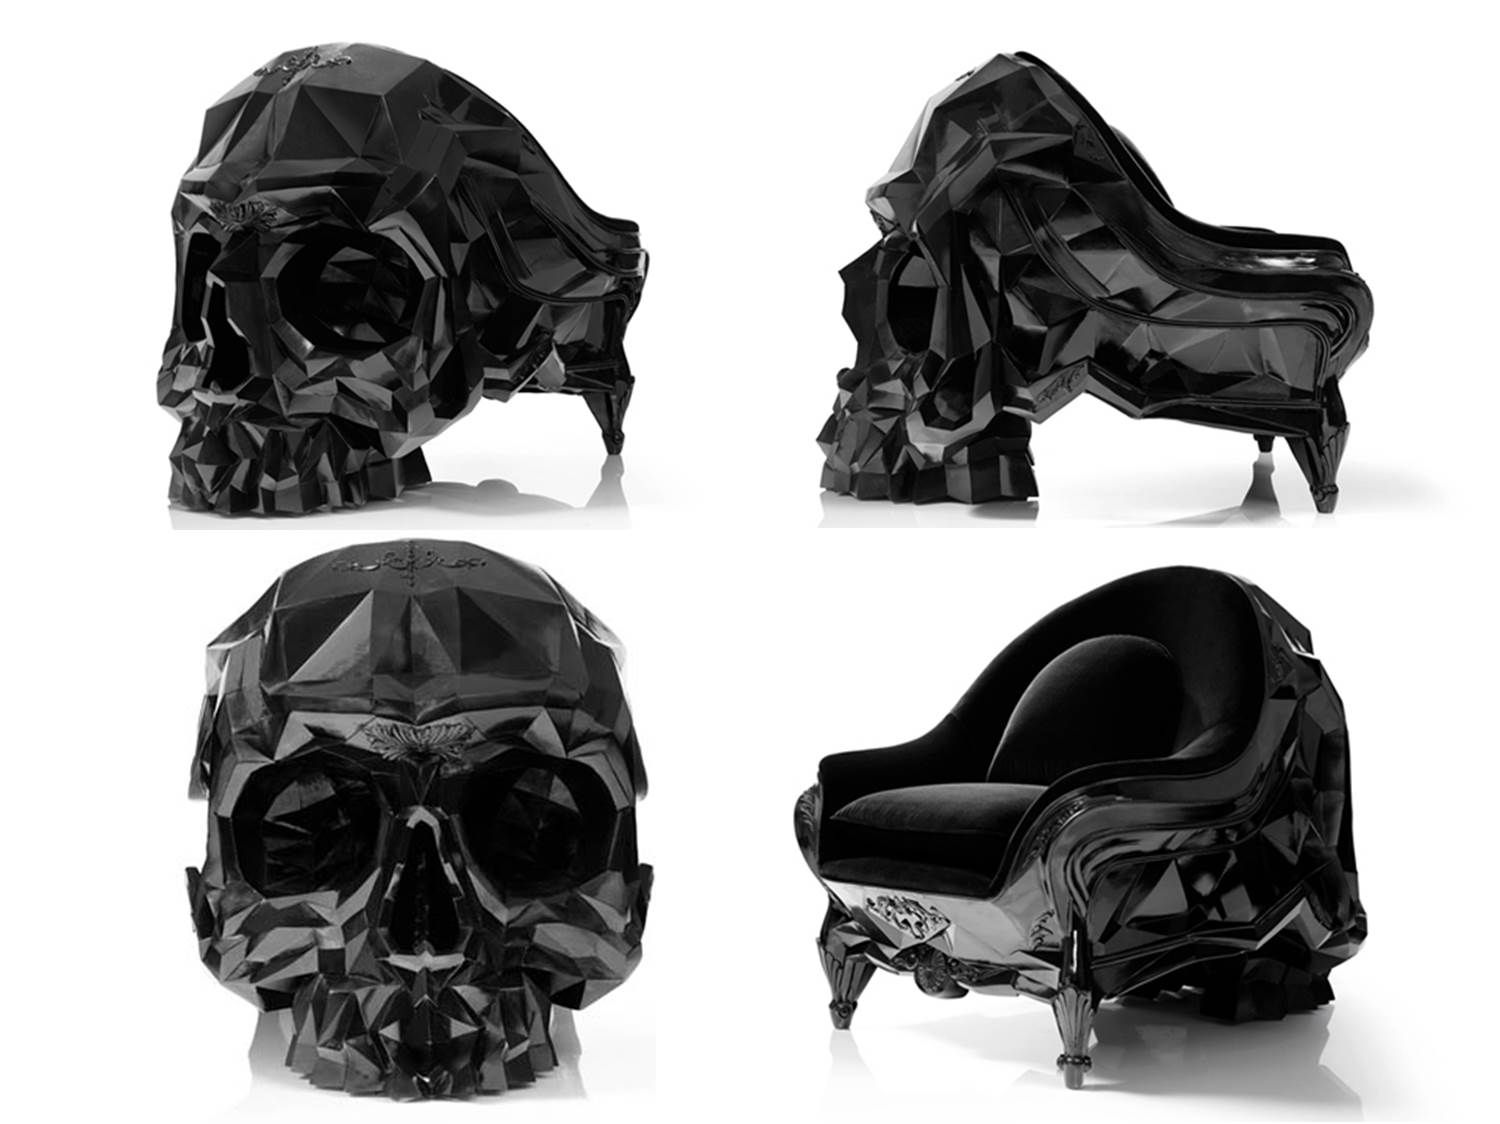 Black skull chair - Geometric Skull Chair By French Artist Harold Sangouard